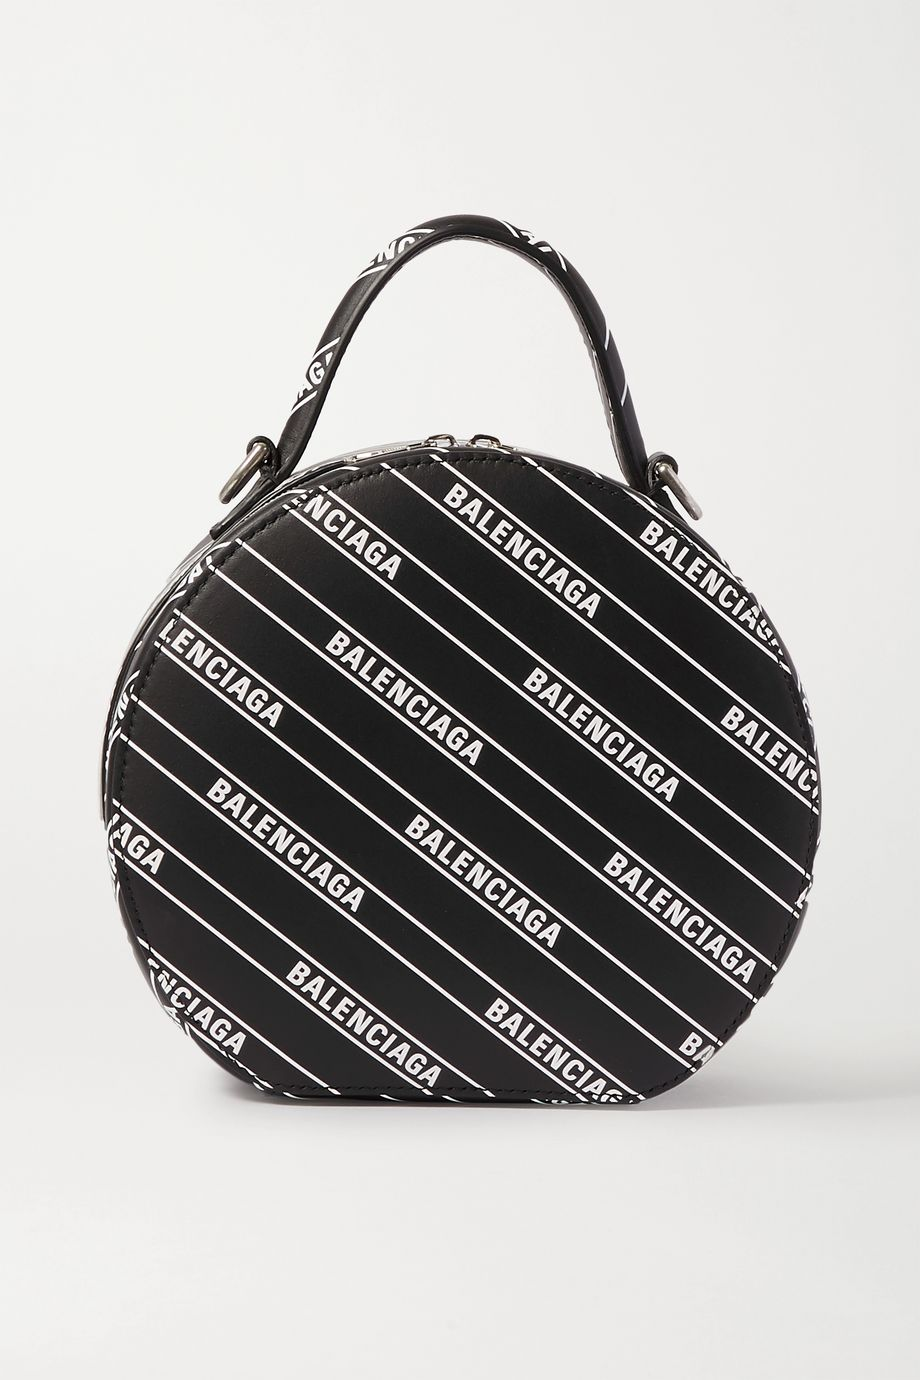 Balenciaga Vanity XS printed leather tote